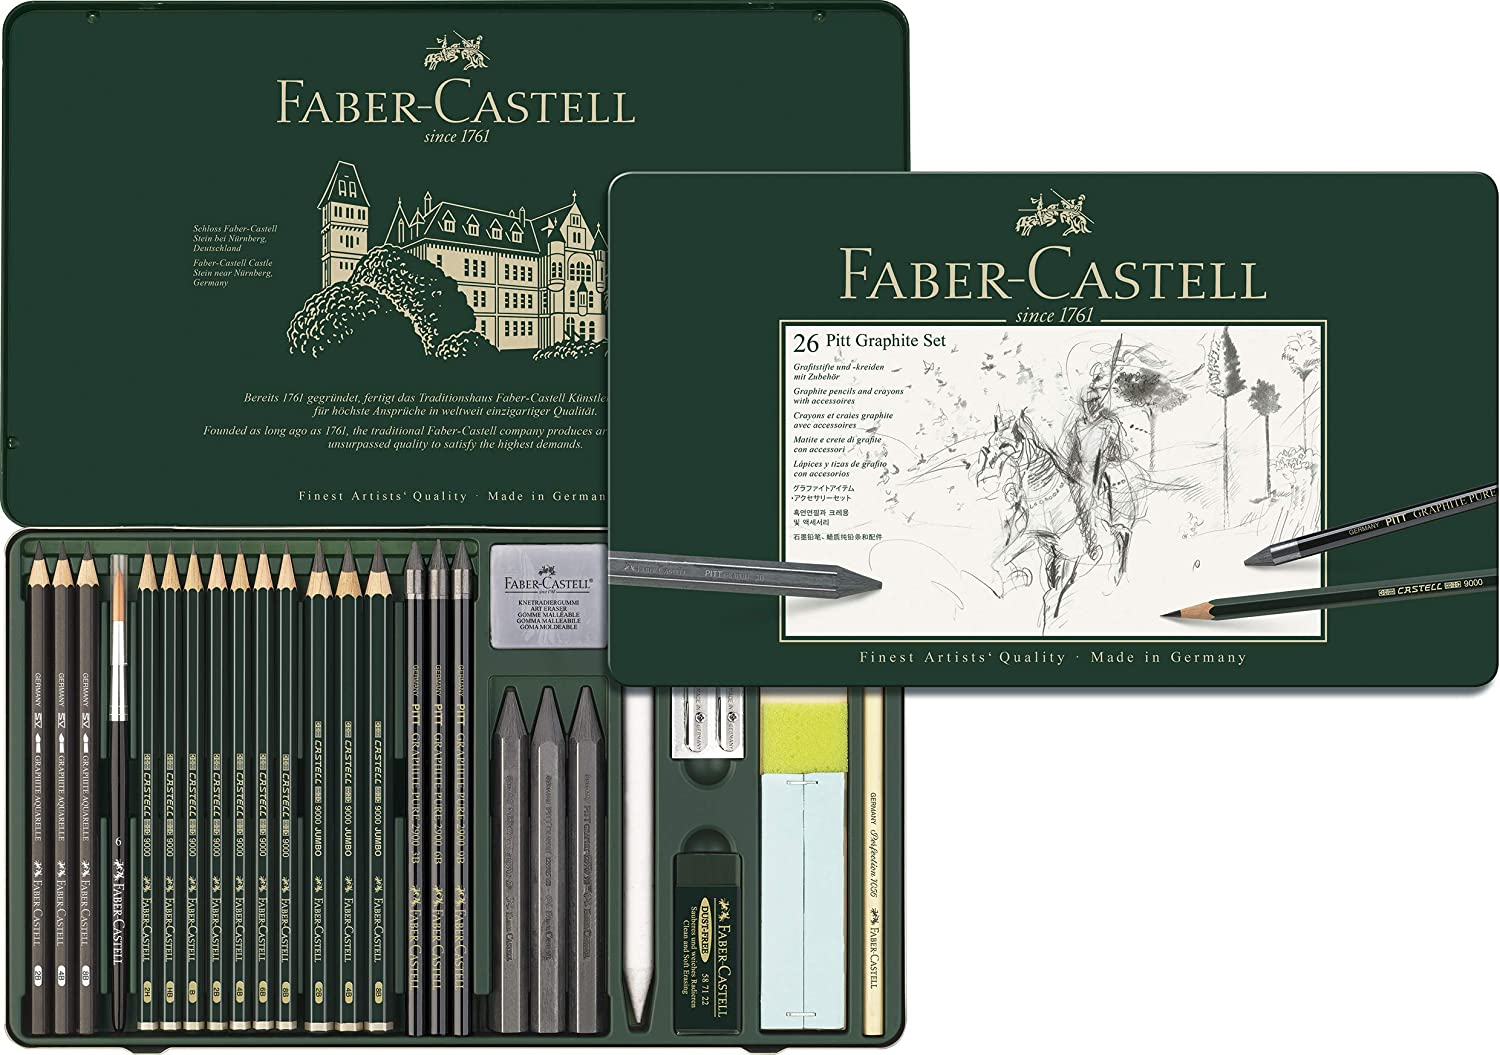 Faber-Castell Pitt Graphite Set - Pack of 26